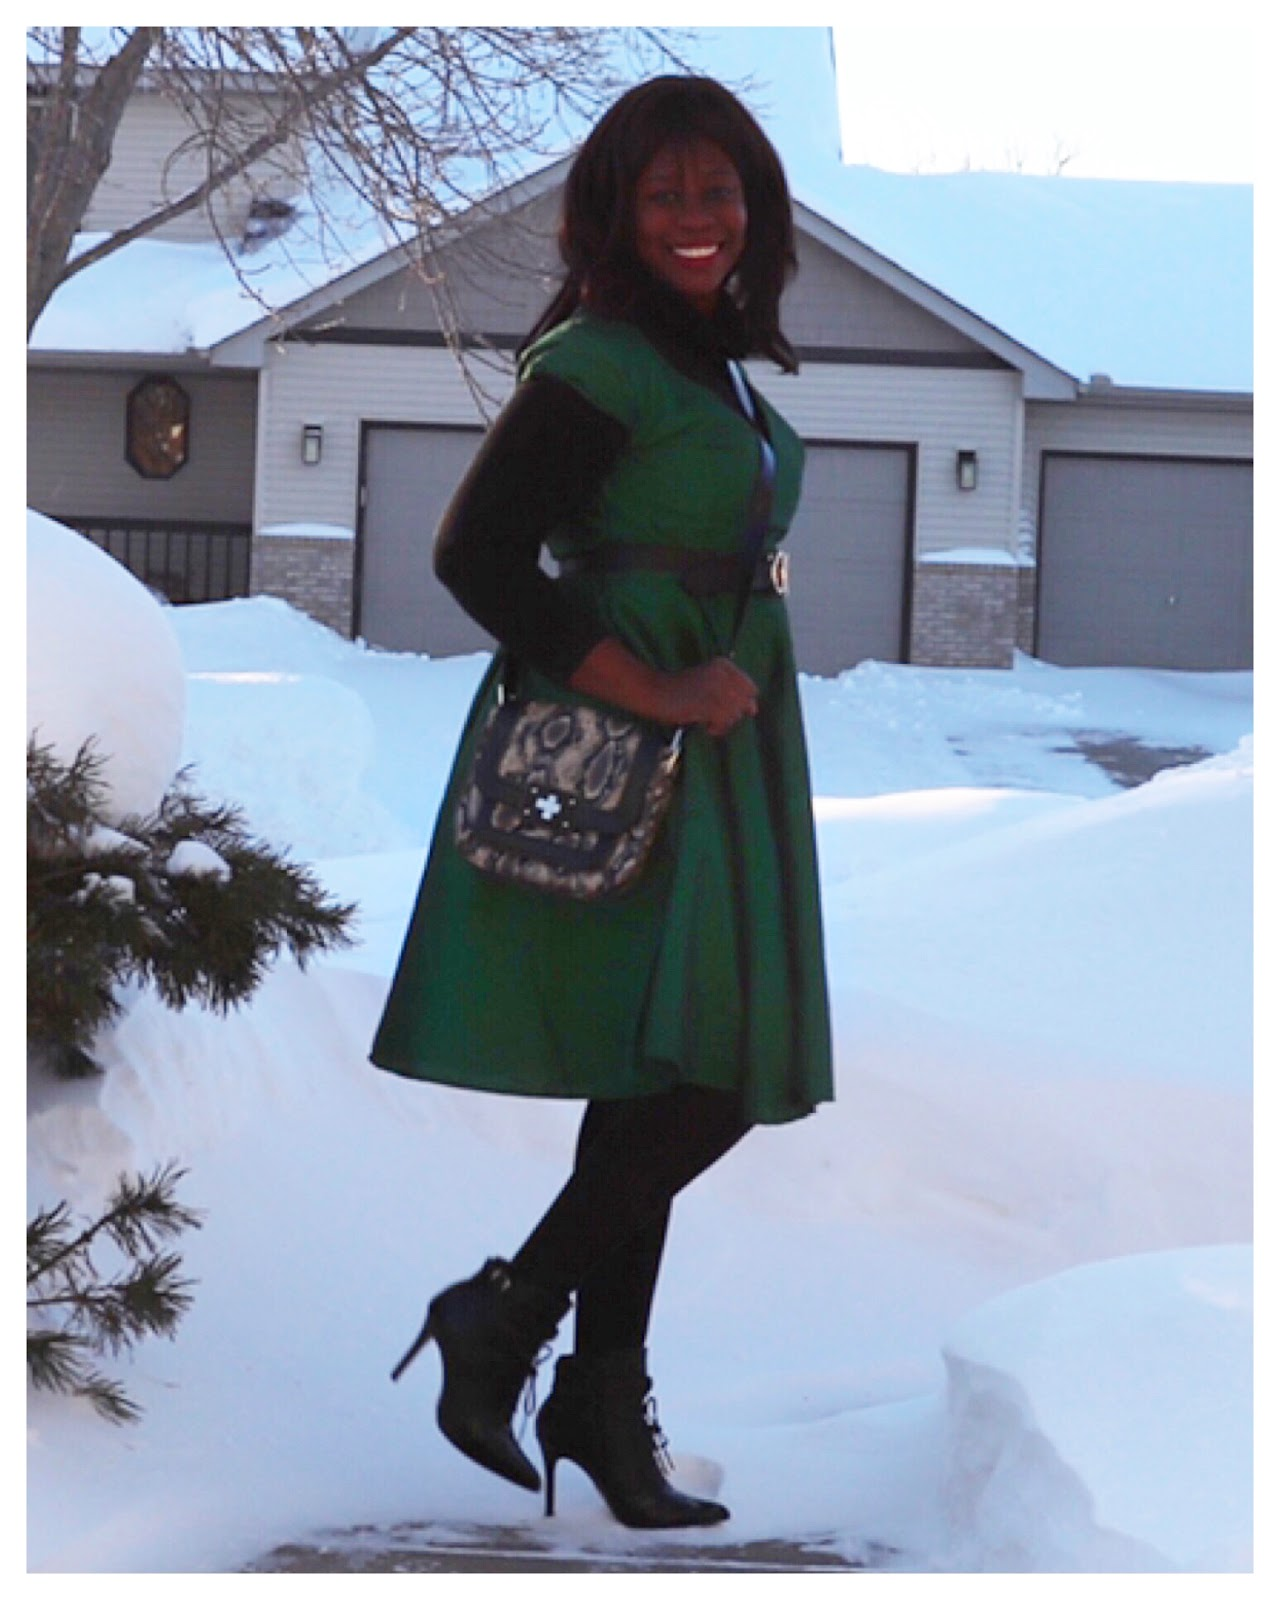 Beauty's Fashion Zone: Green Dupioni Midi Dress + Ankle Boots